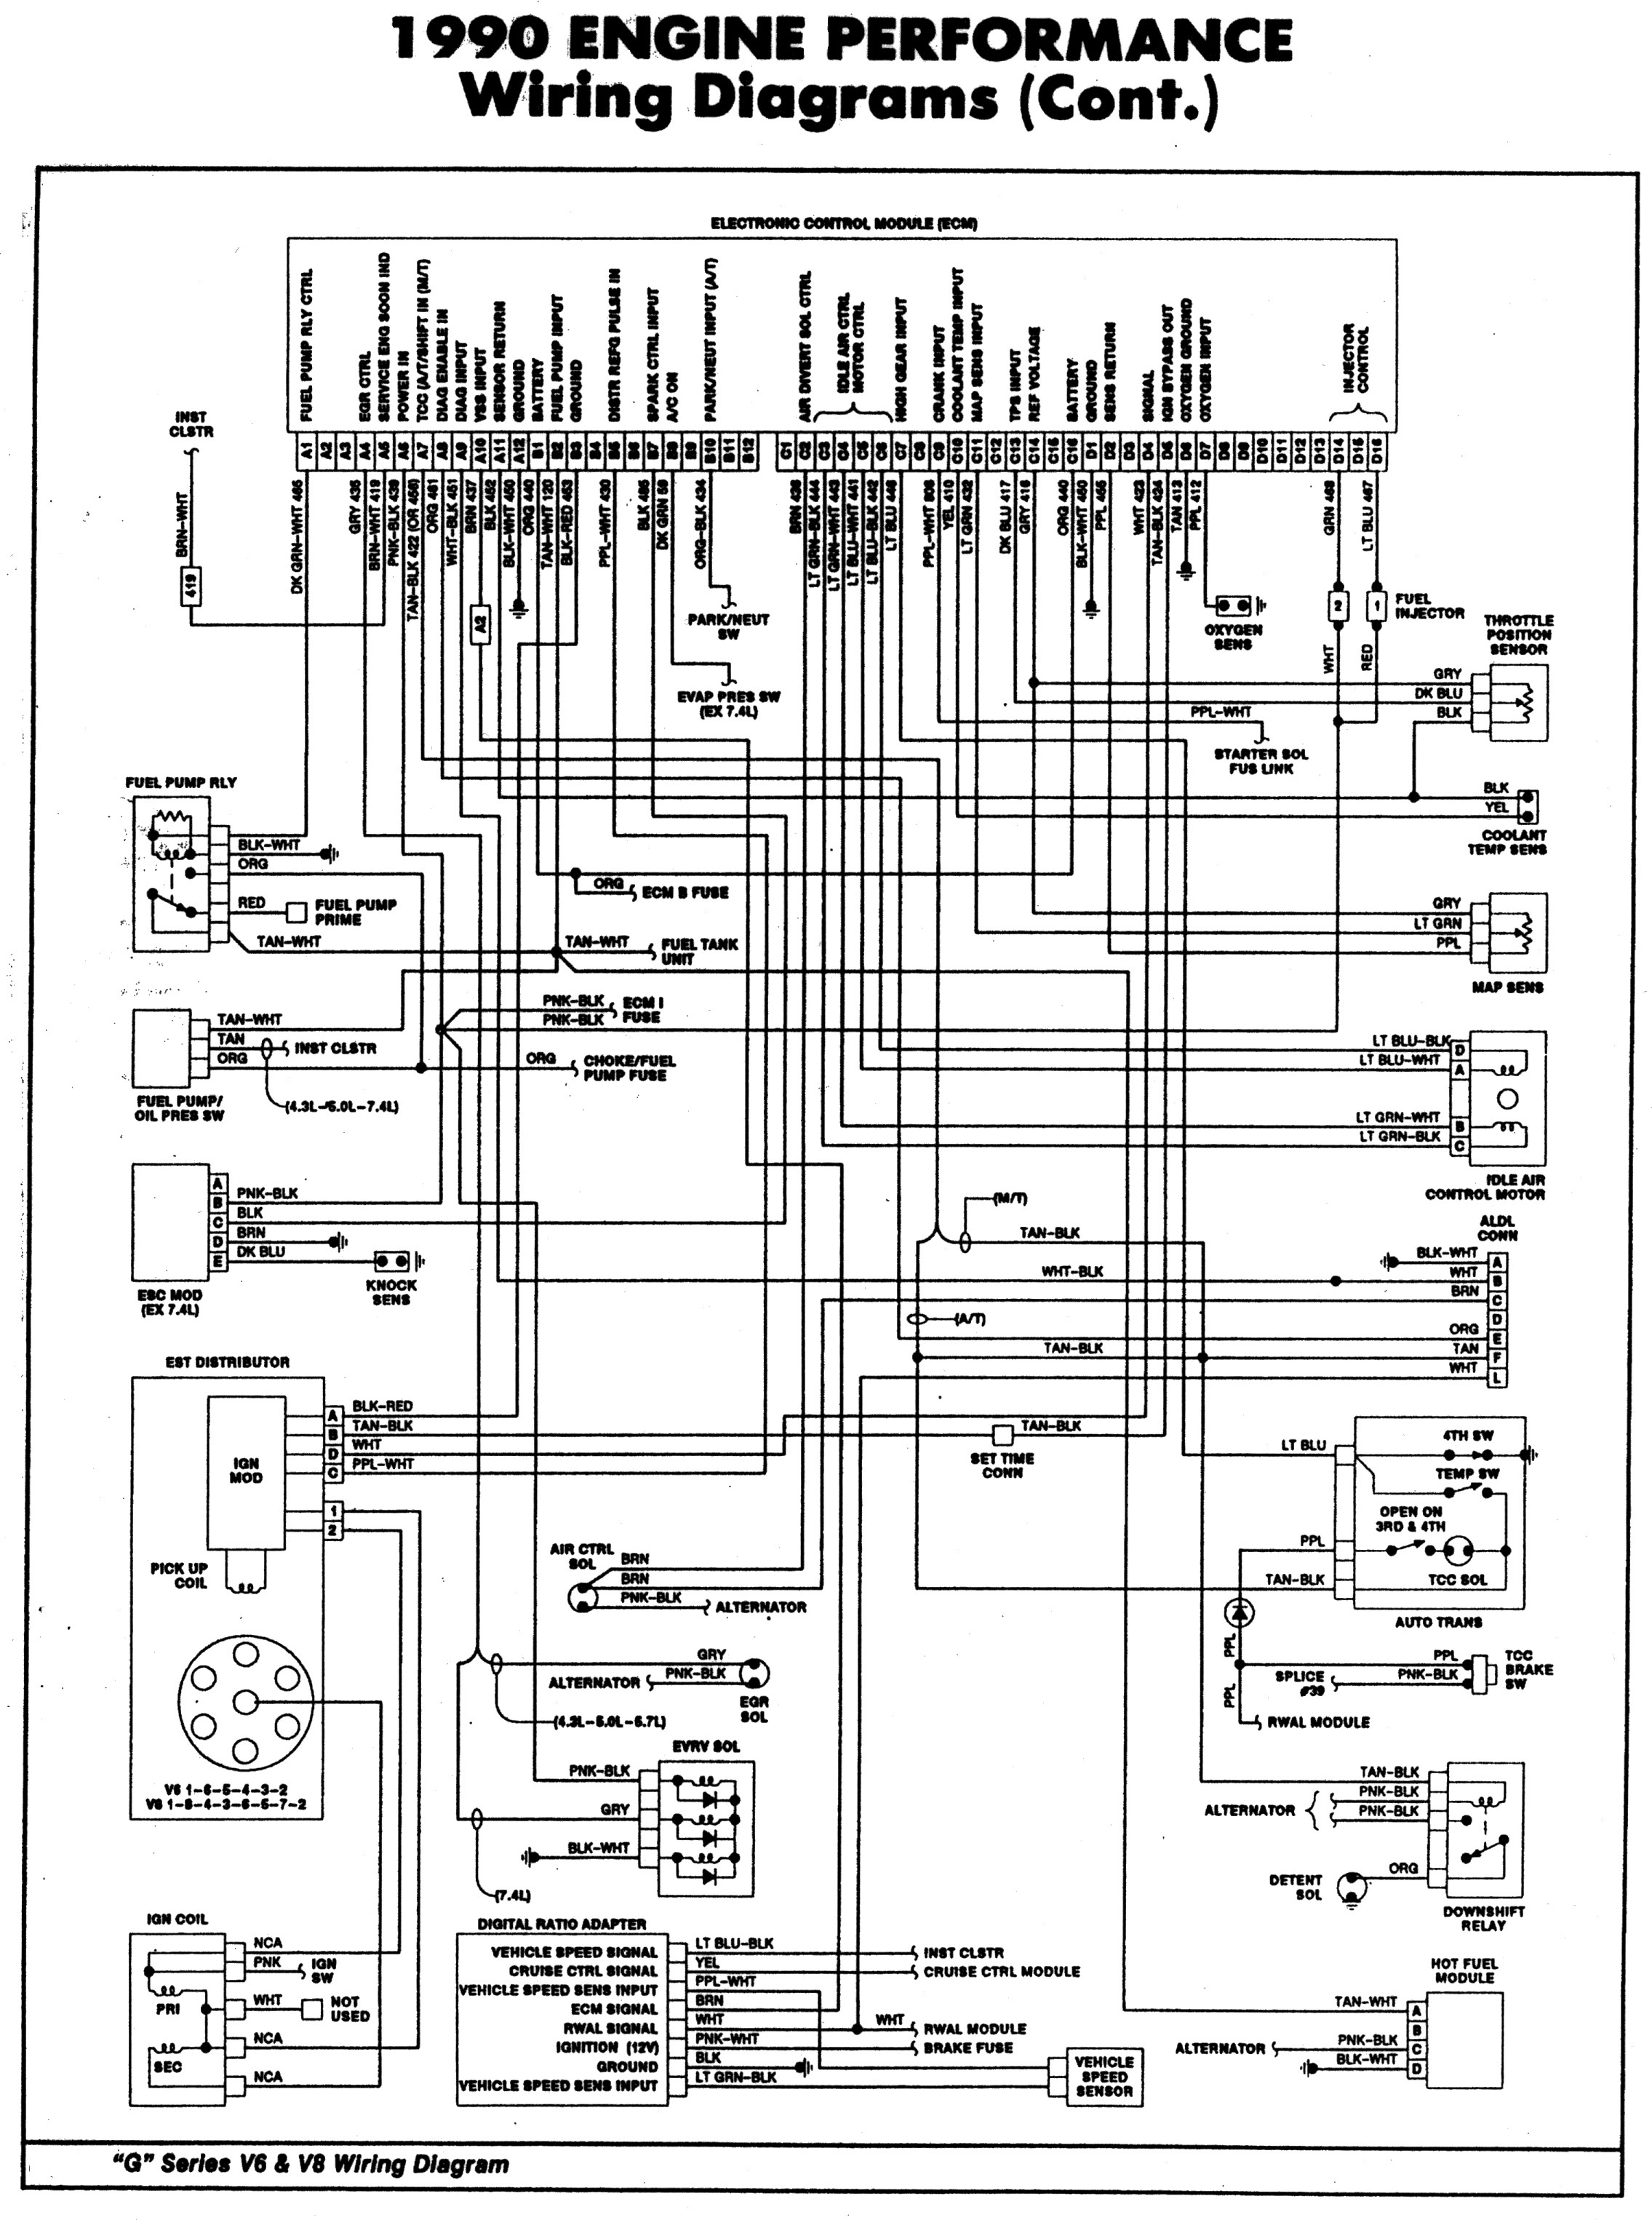 hight resolution of 1990 chevy rv wiring diagram wiring diagram home 1990 chevy rv wiring diagram